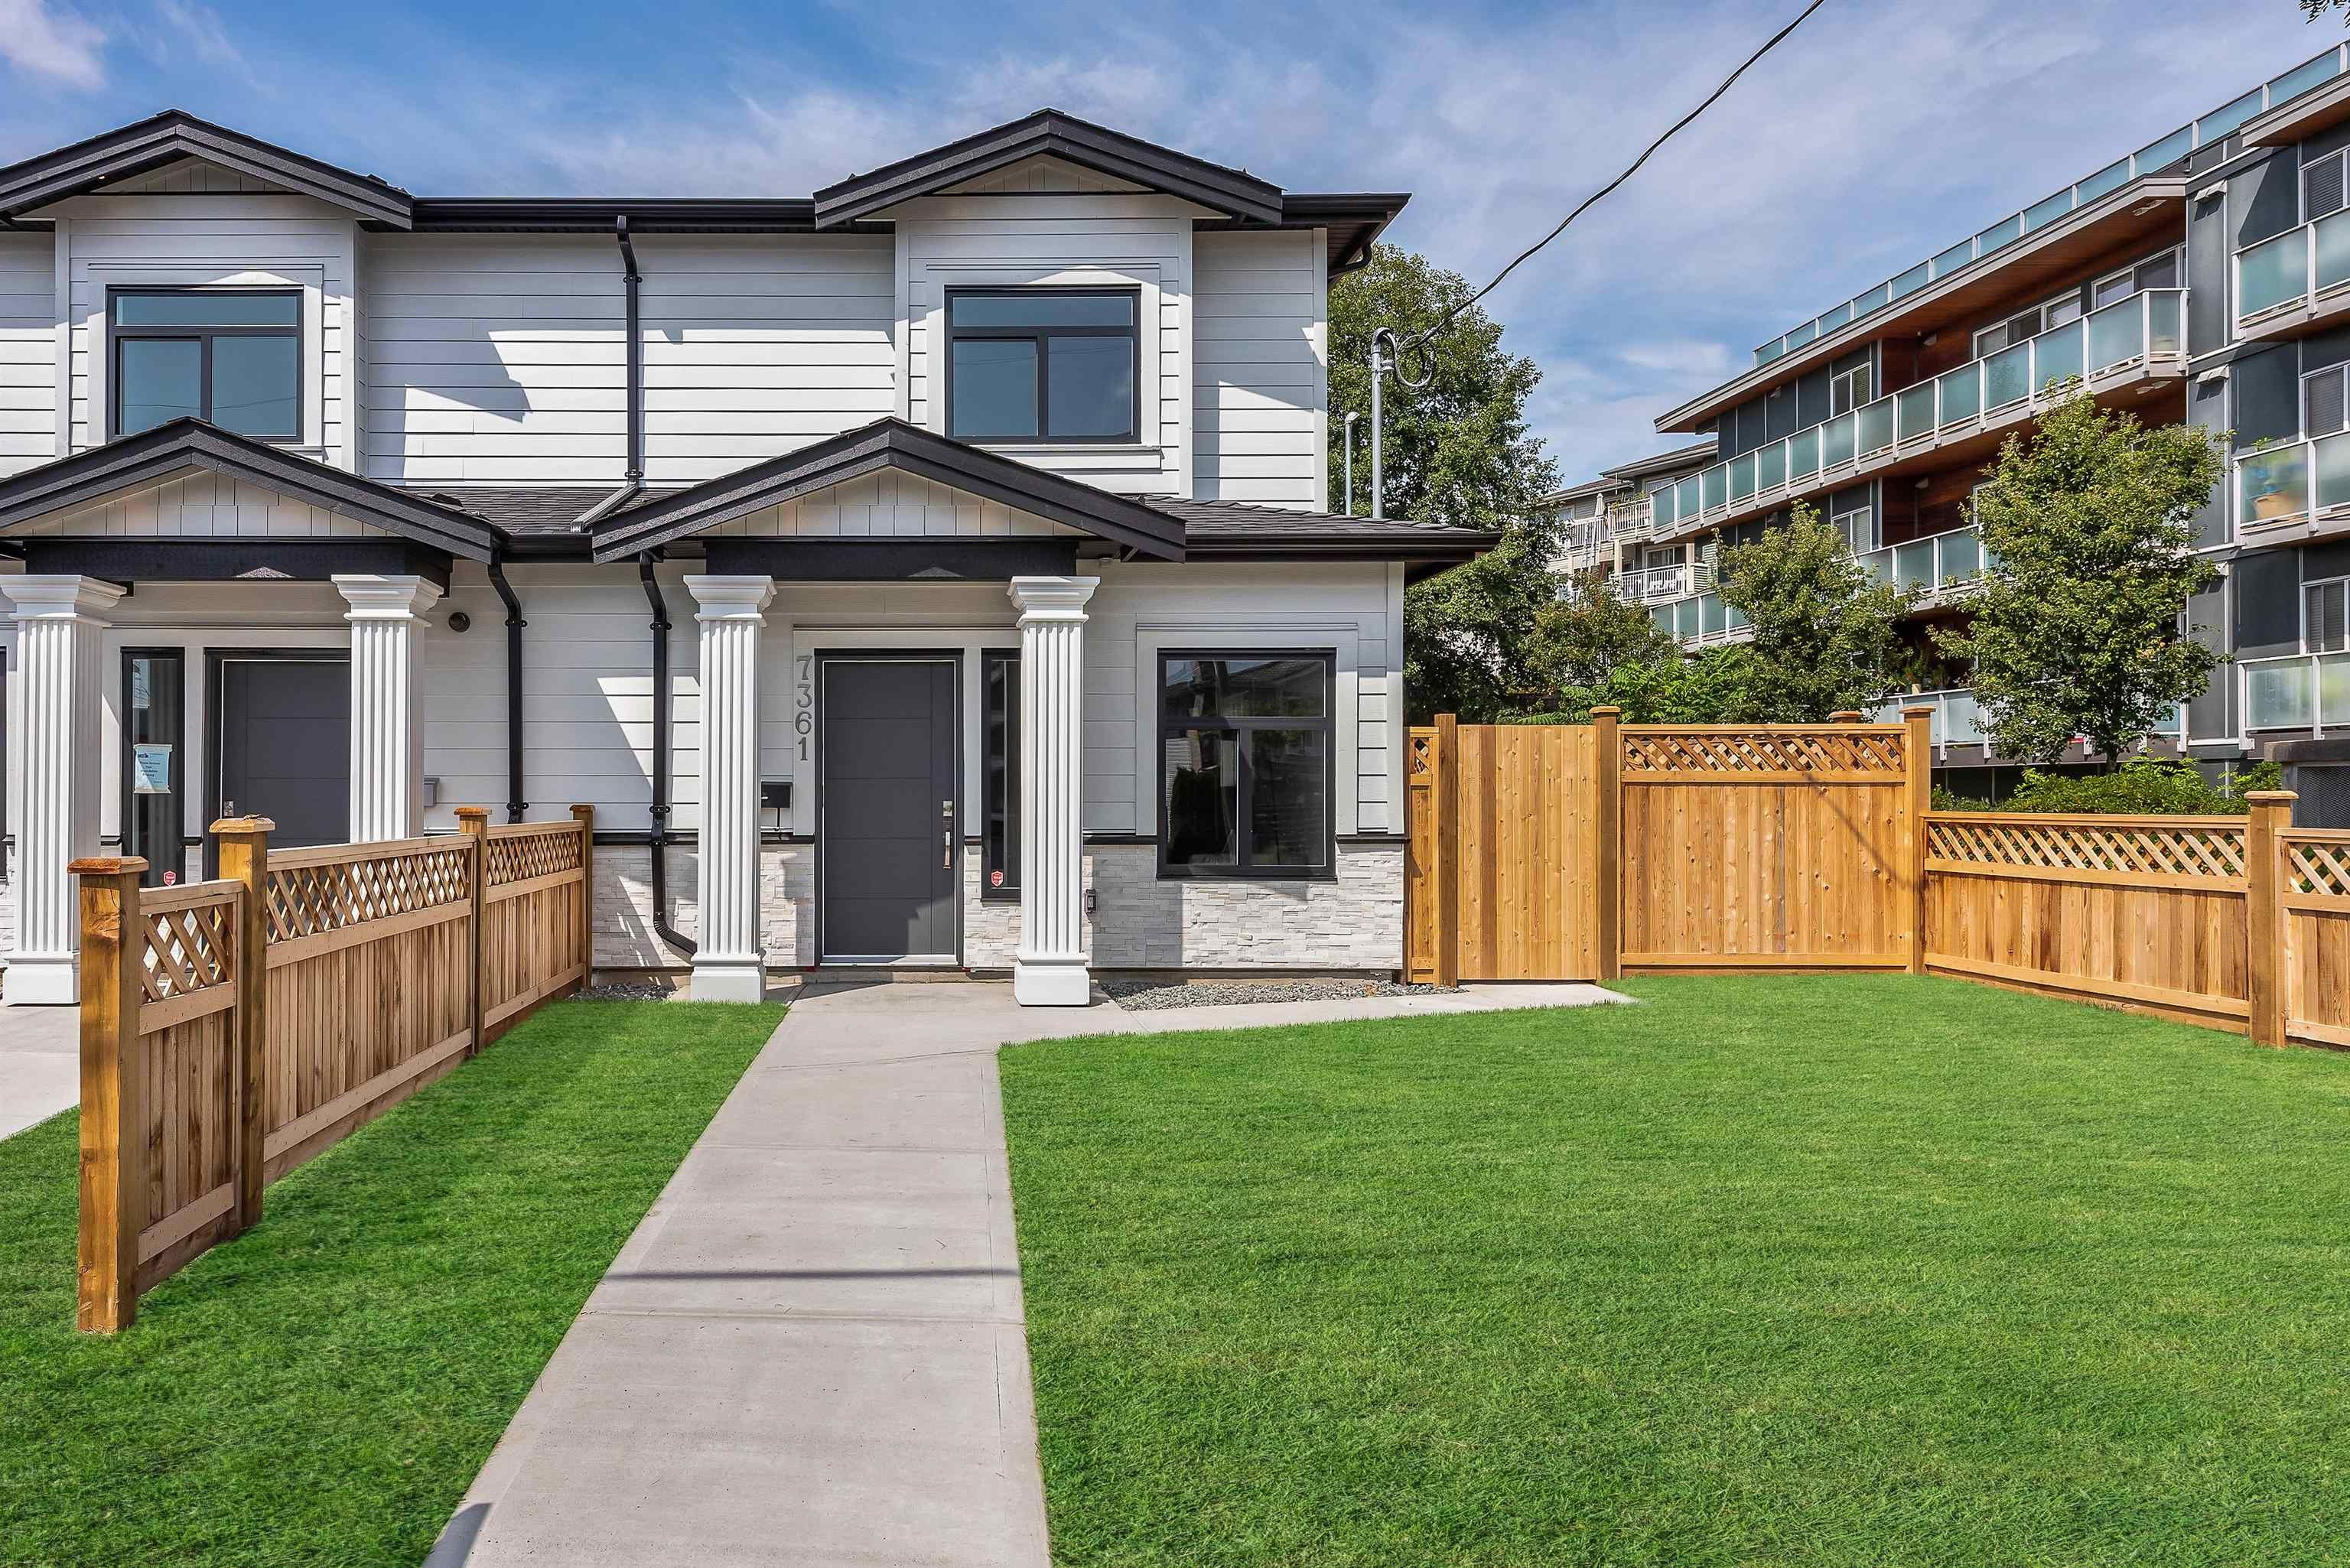 Main Photo: 7361 14TH Avenue in Burnaby: East Burnaby 1/2 Duplex for sale (Burnaby East)  : MLS®# R2611913